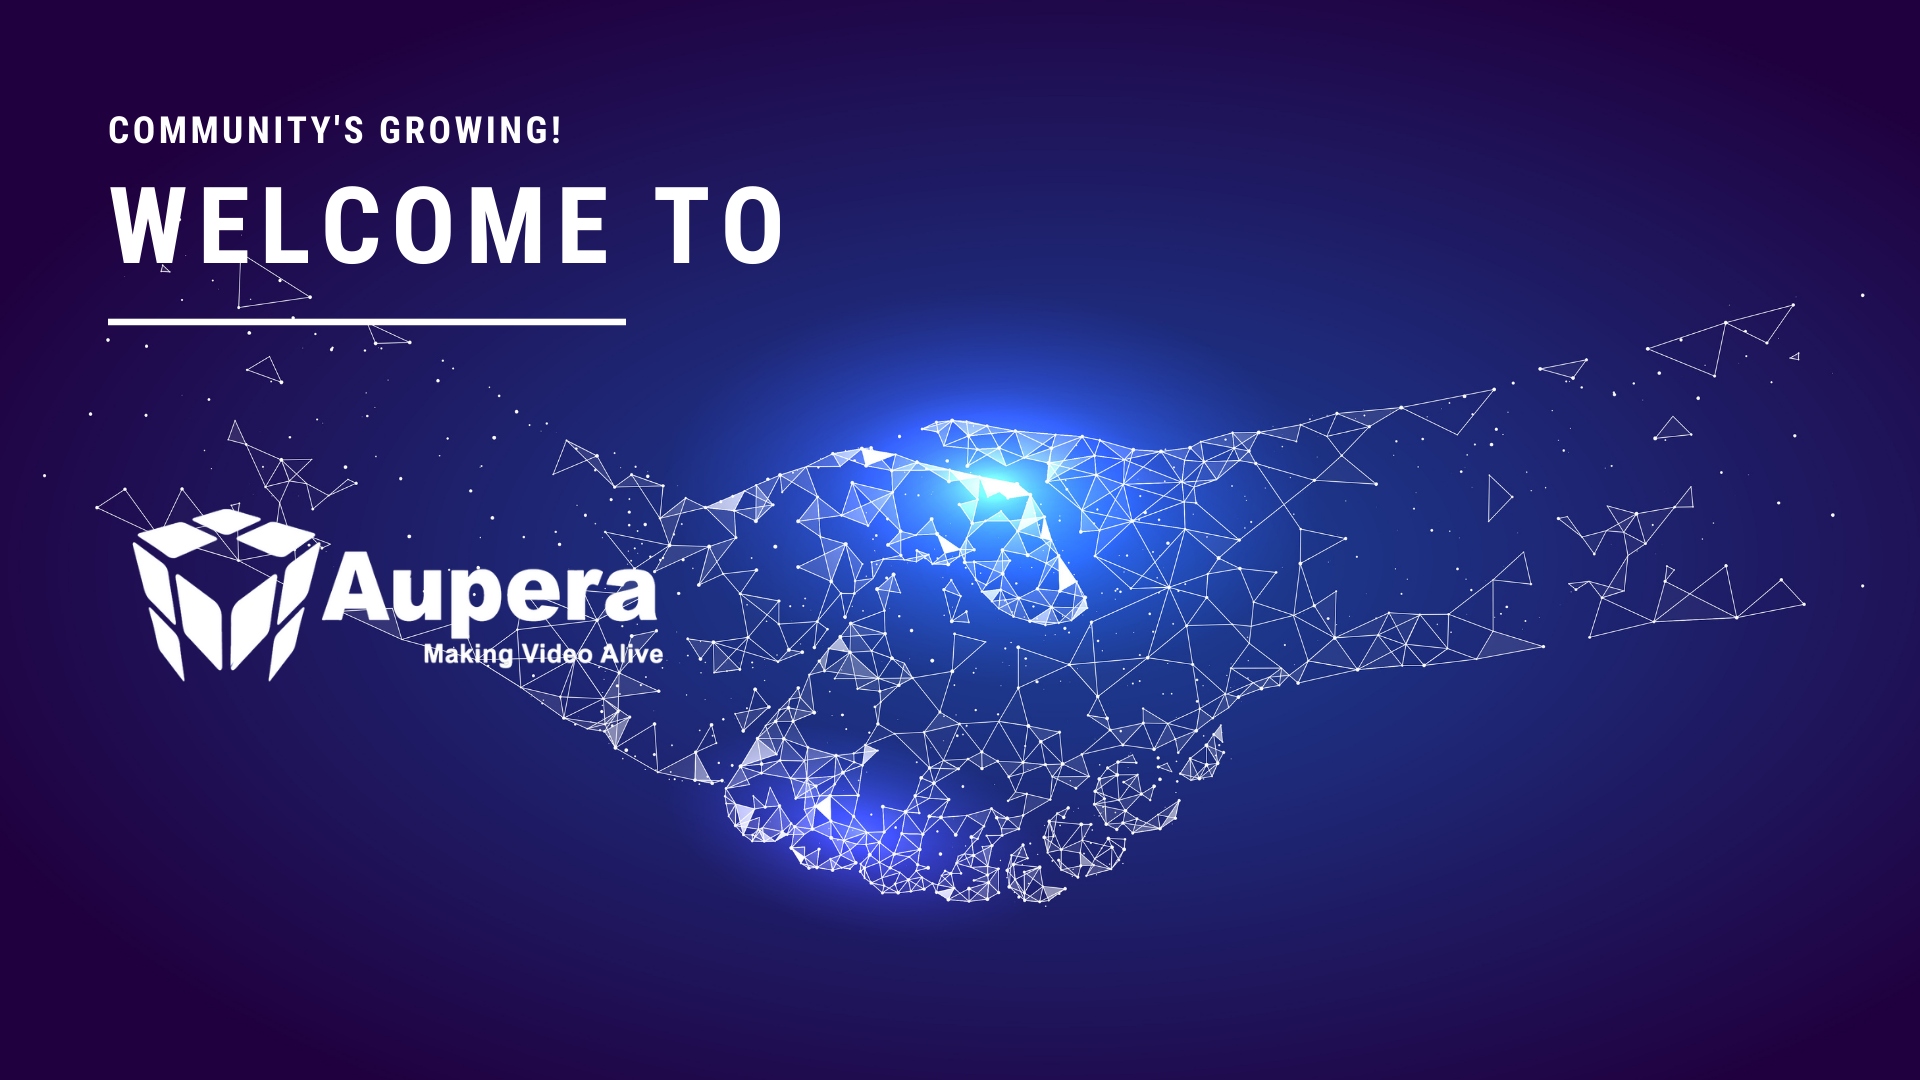 WELCOME TO AUPERA TECHNOLOGIES